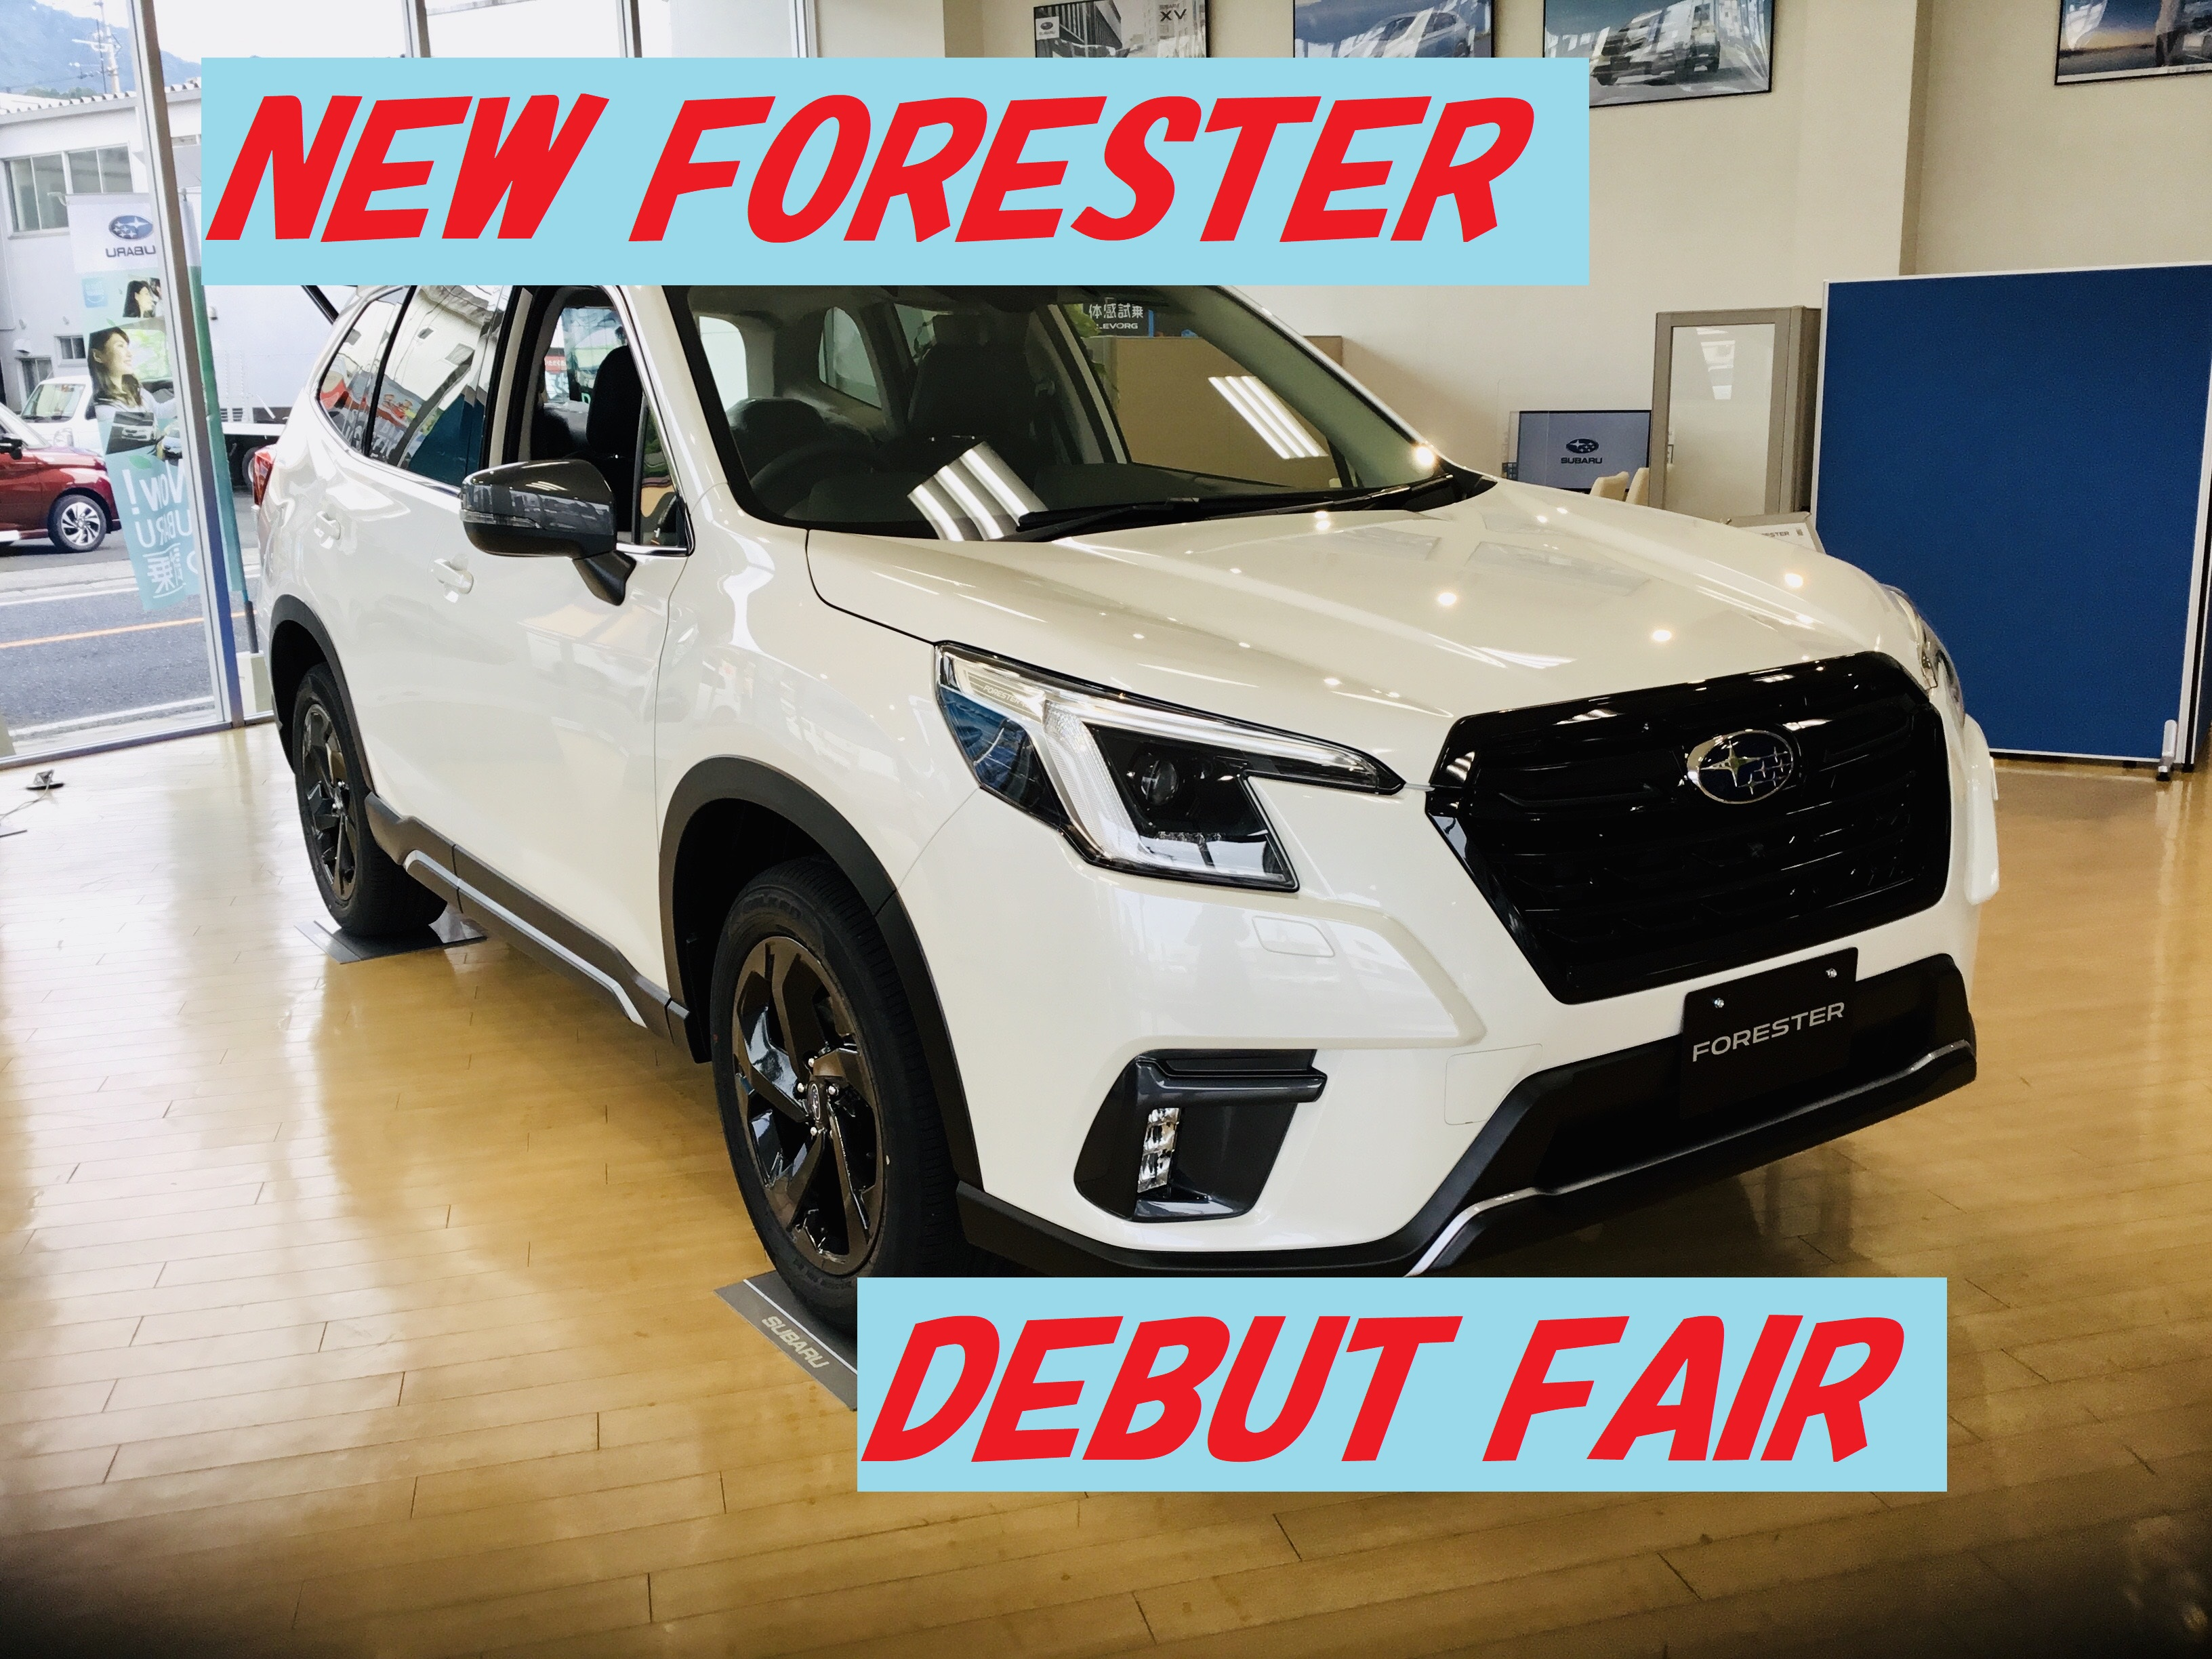 NEW FORESTER Debut Fair!!